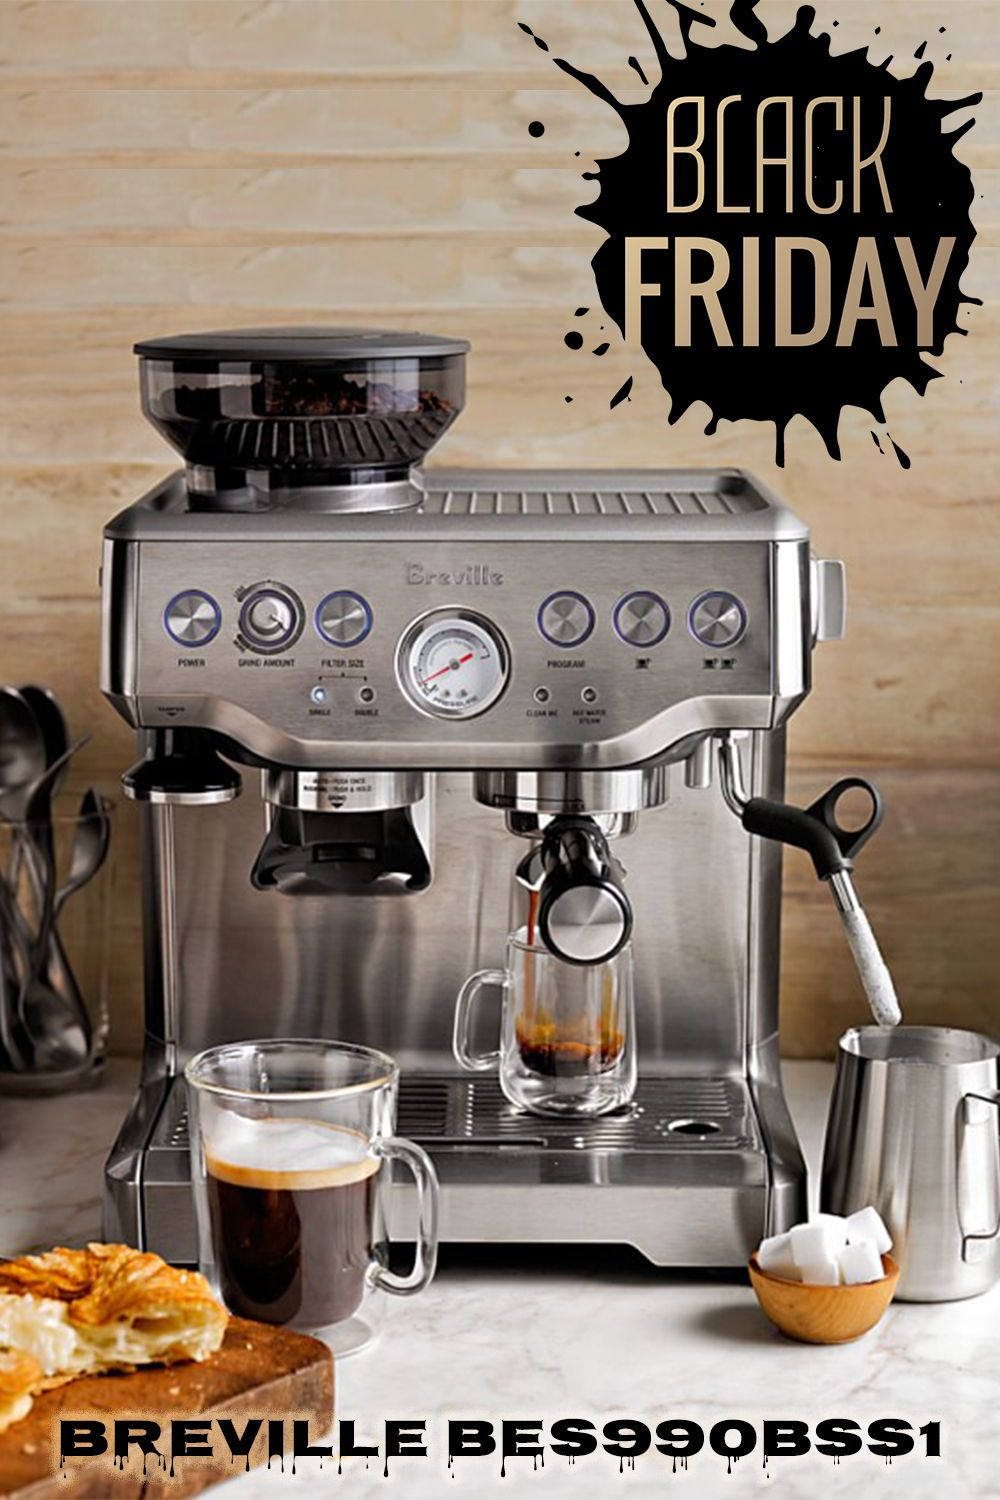 Holiday Deals On Amazon All Your Favorite Coffee Makers Cheaper Than Ever Get A Coffee Maker Espresso Breville Barista Express Best Espresso Machine